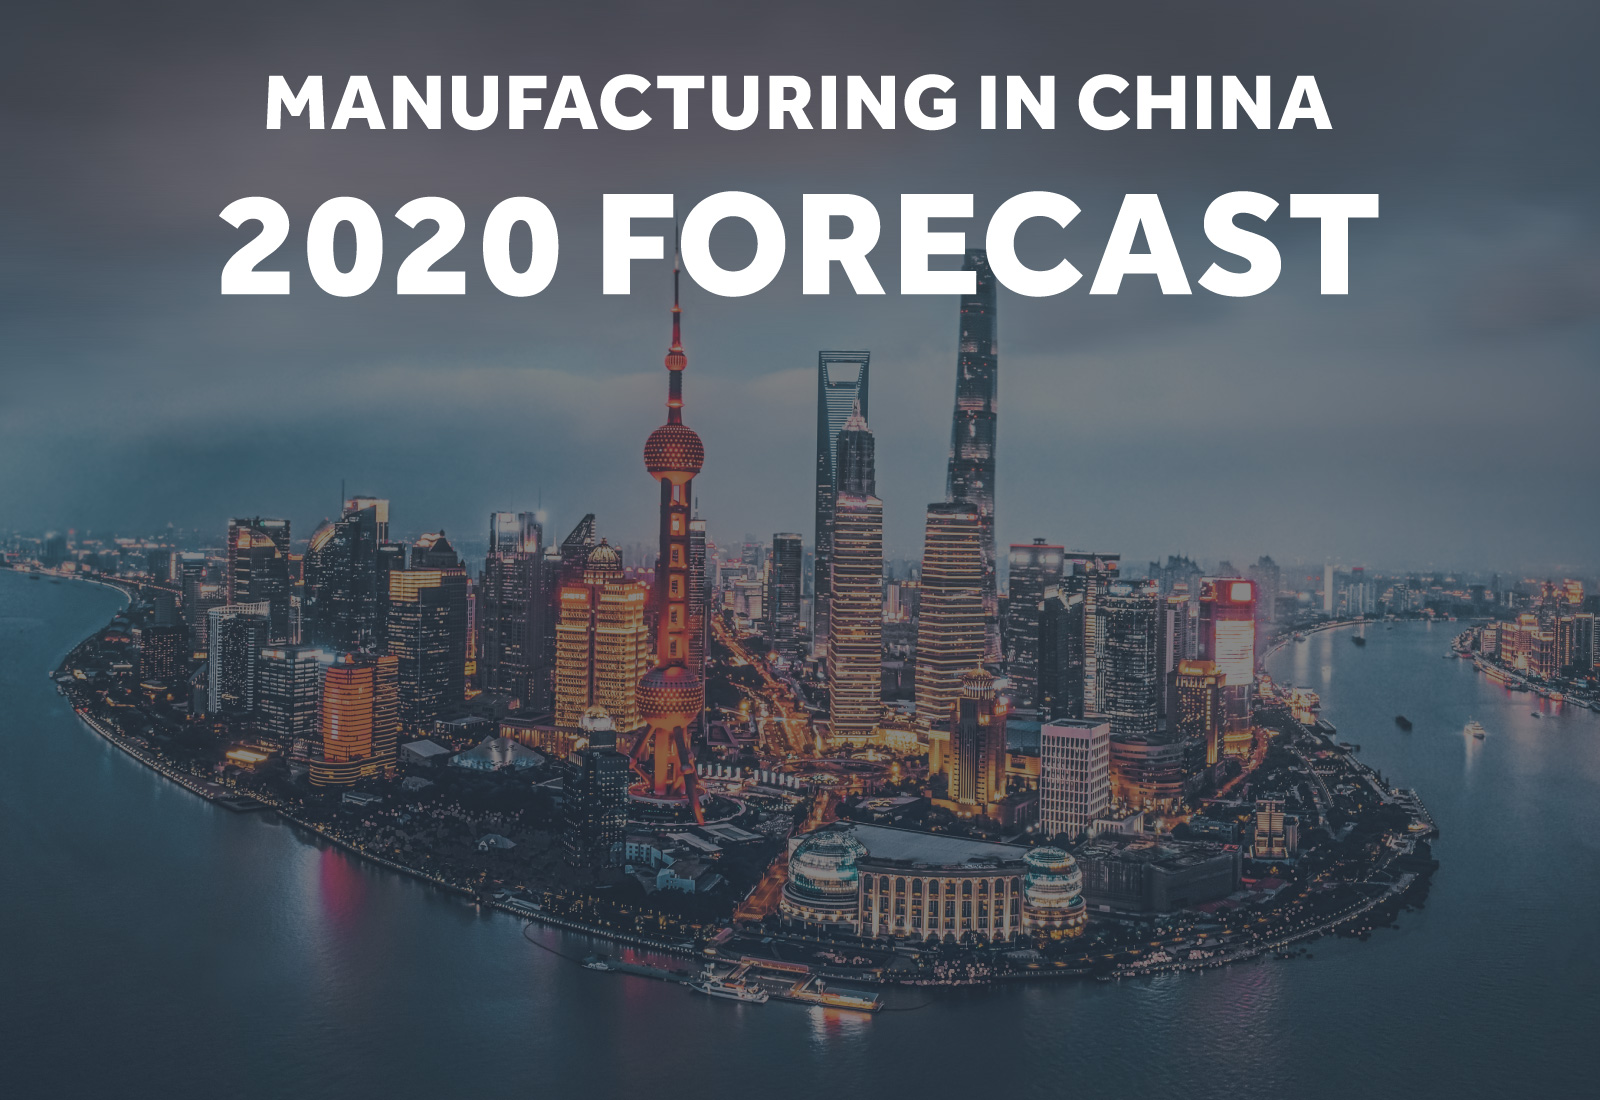 Manufacturing in China - 2020 forecast